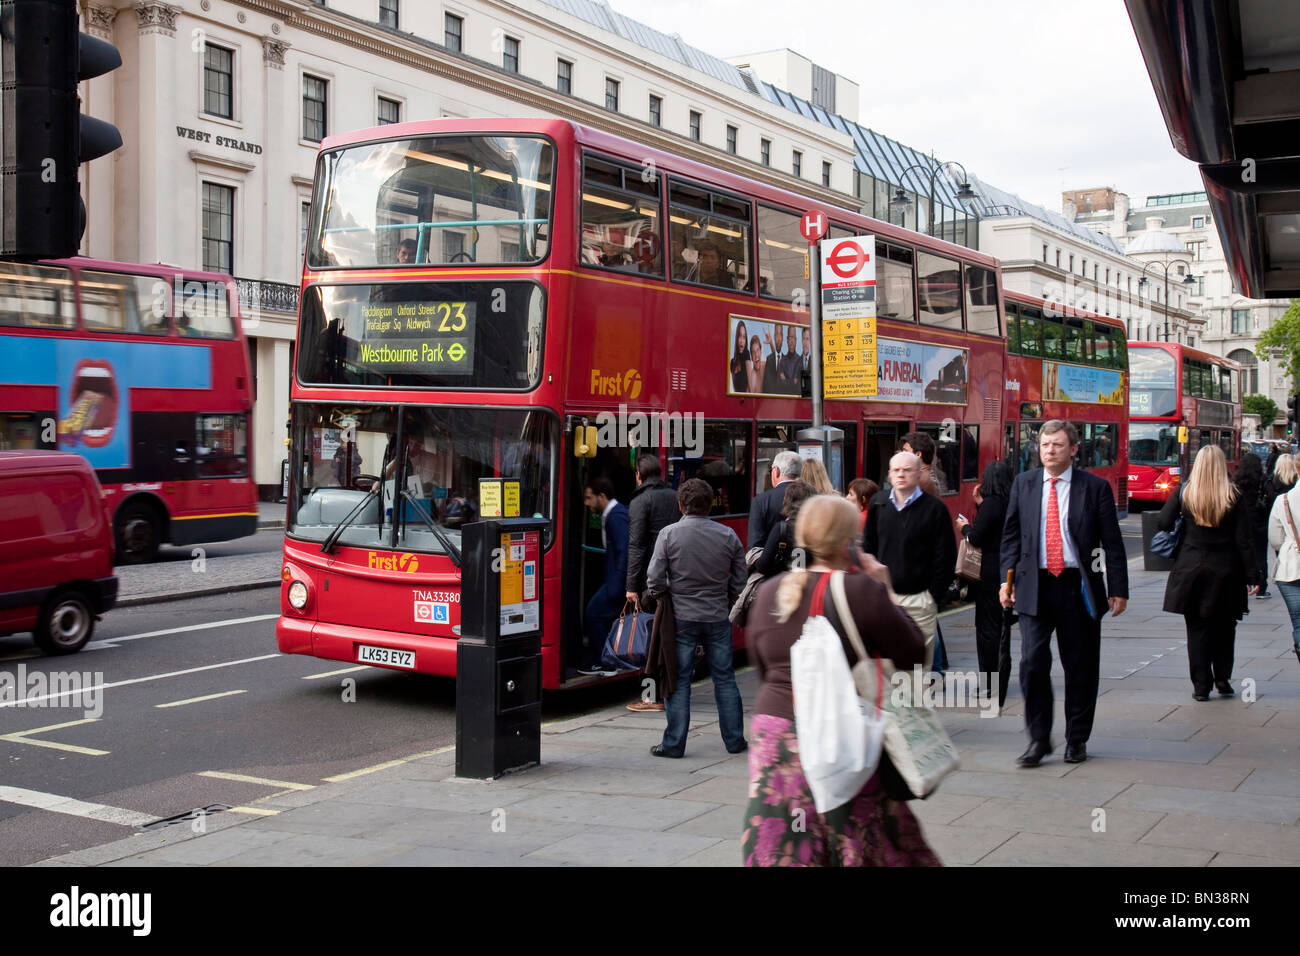 People getting onto a red doubledecker bus in the city centre of London - Stock Image